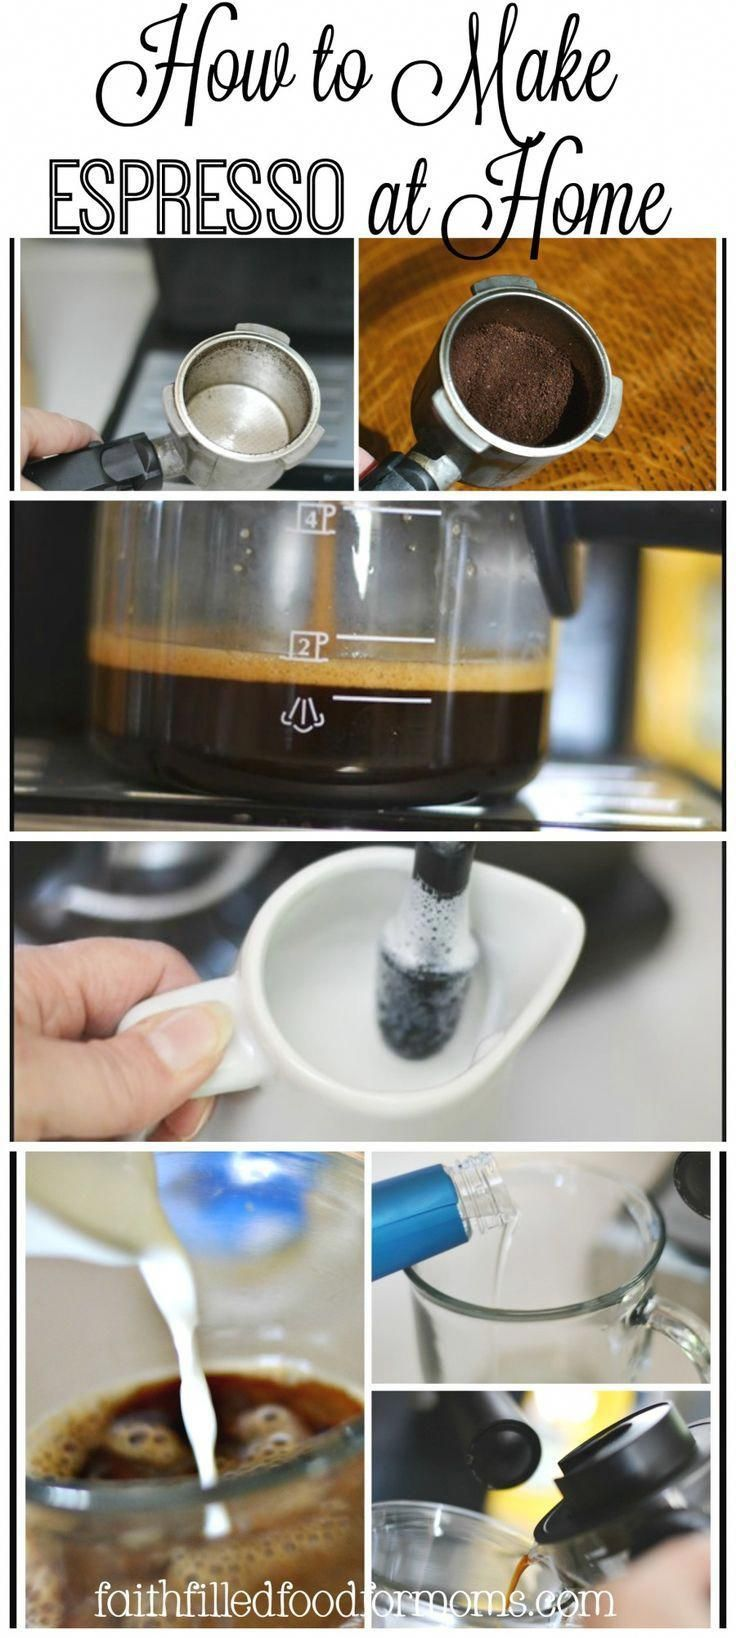 Learn How to Make Espresso at Home and save TONS of money by making all kinds of gourmet coffee drinks! So fun and super EASY! Make all your favorite coffee recipes at home instead of going to a coffee stand! Make your own coffee bar! #coffee #coffeeaddict #DIY #savemoney #frugal #coffeedrinks # #makecoffeeathome #espressoathome Learn How to Make Espresso at Home and save TONS of money by making all kinds of gourmet coffee drinks! So fun and super EASY! Make all your favorite coffee recipes at h #espressoathome